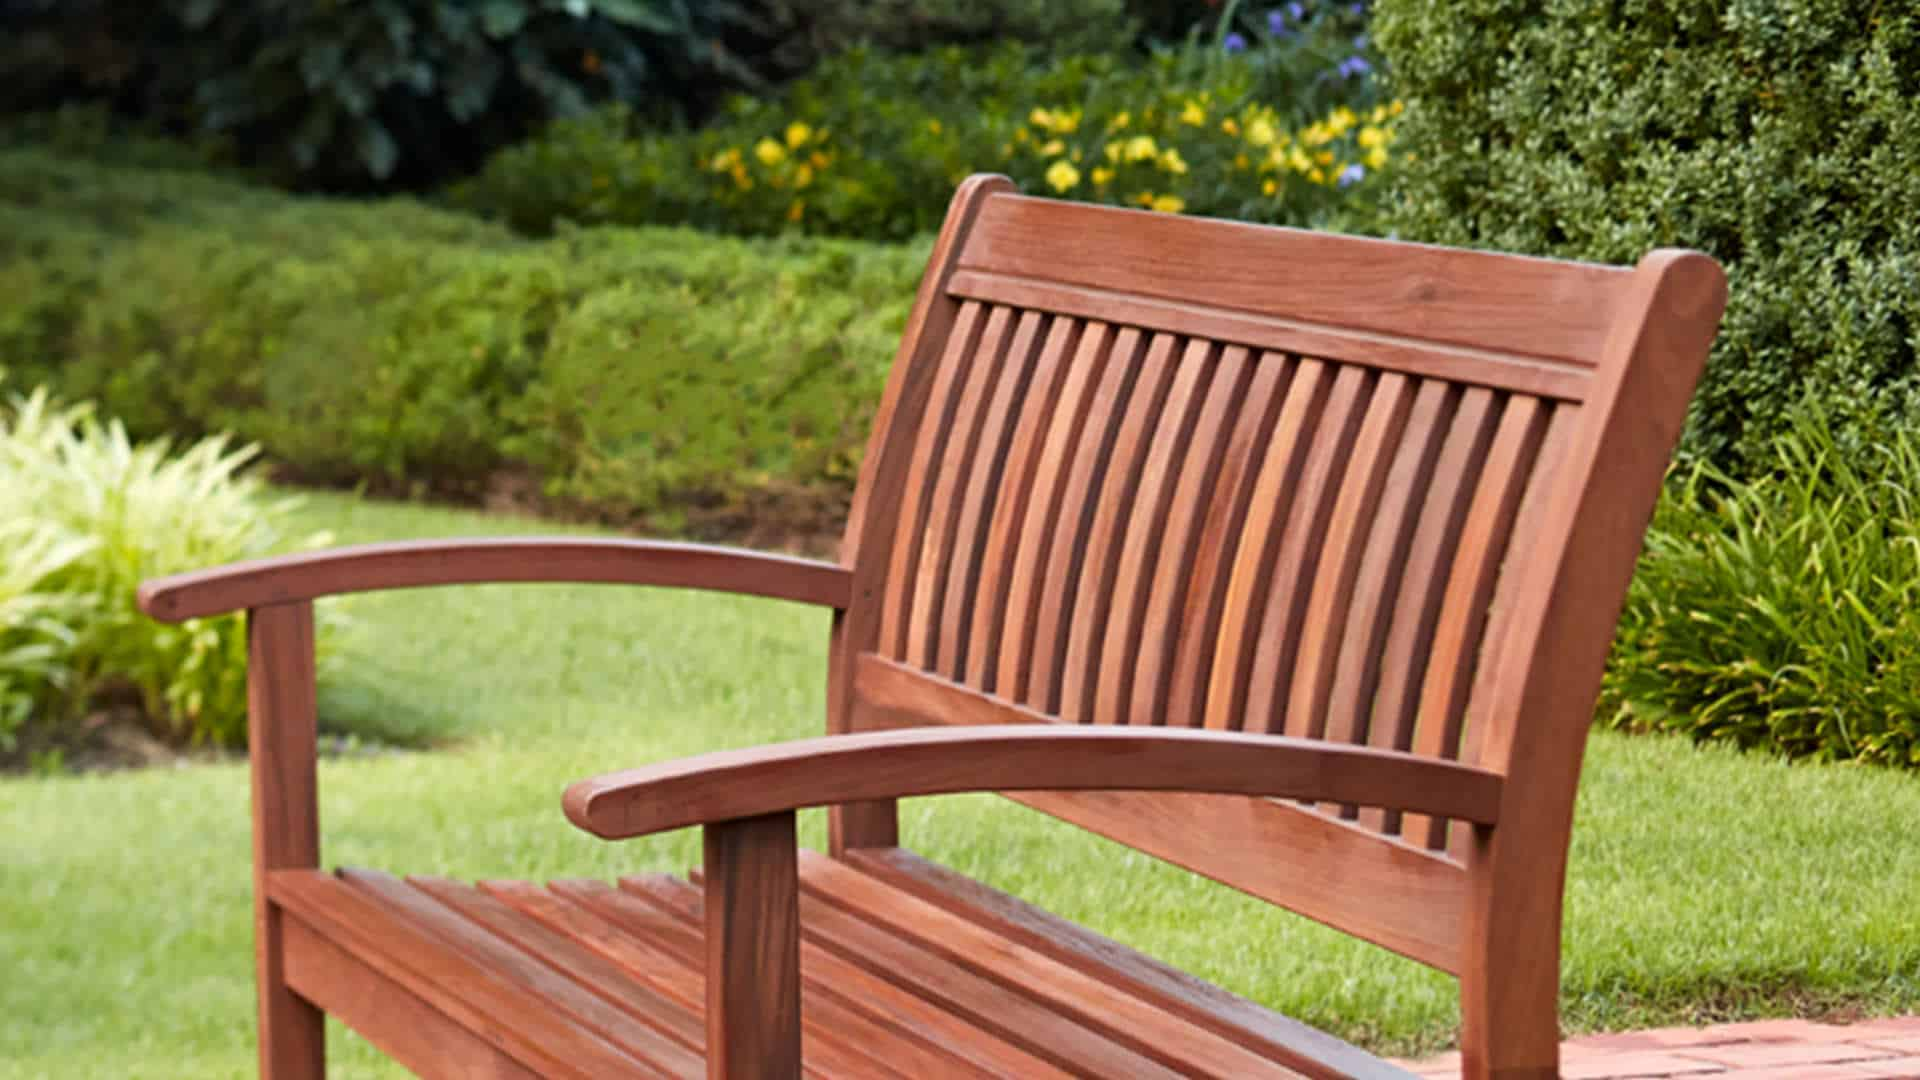 Garden Bench Jensen Leisure Furniture